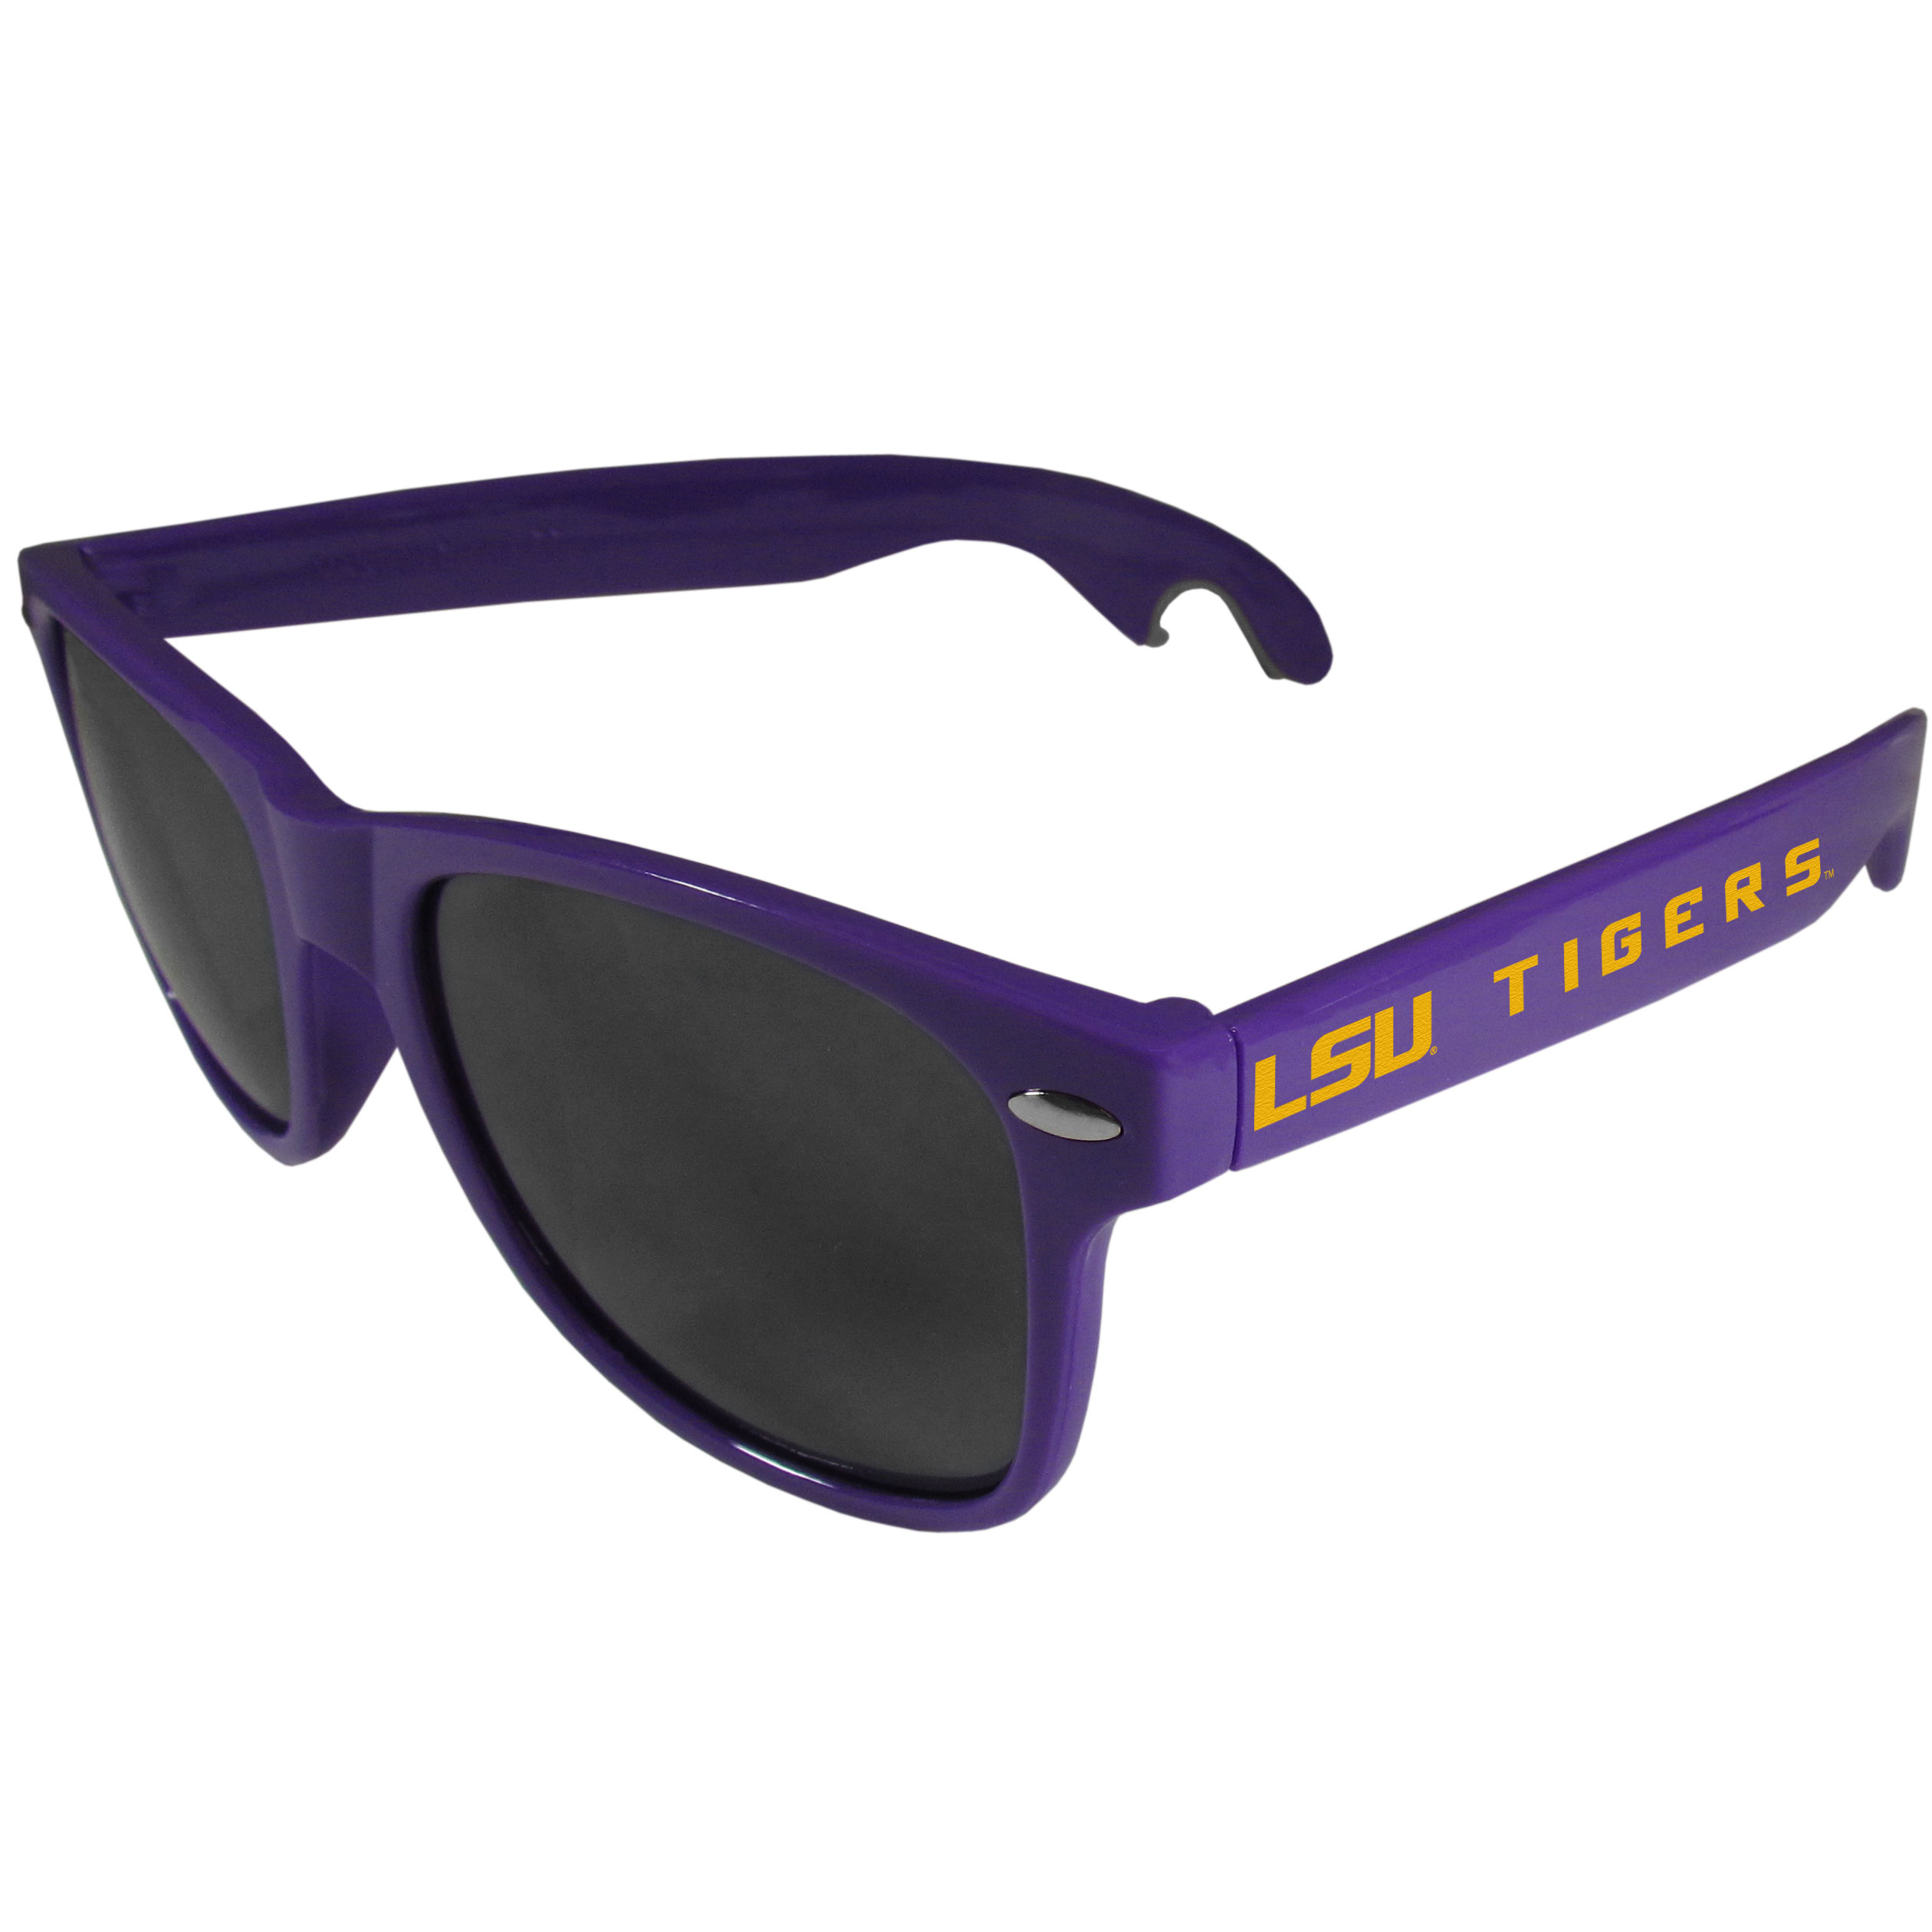 LSU Tigers Beachfarer Bottle Opener Sunglasses, Purple - Seriously, these sunglasses open bottles! Keep the party going with these amazing LSU Tigers bottle opener sunglasses. The stylish retro frames feature team designs on the arms and functional bottle openers on the end of the arms. Whether you are at the beach or having a backyard BBQ on game day, these shades will keep your eyes protected with 100% UVA/UVB protection and keep you hydrated with the handy bottle opener arms.